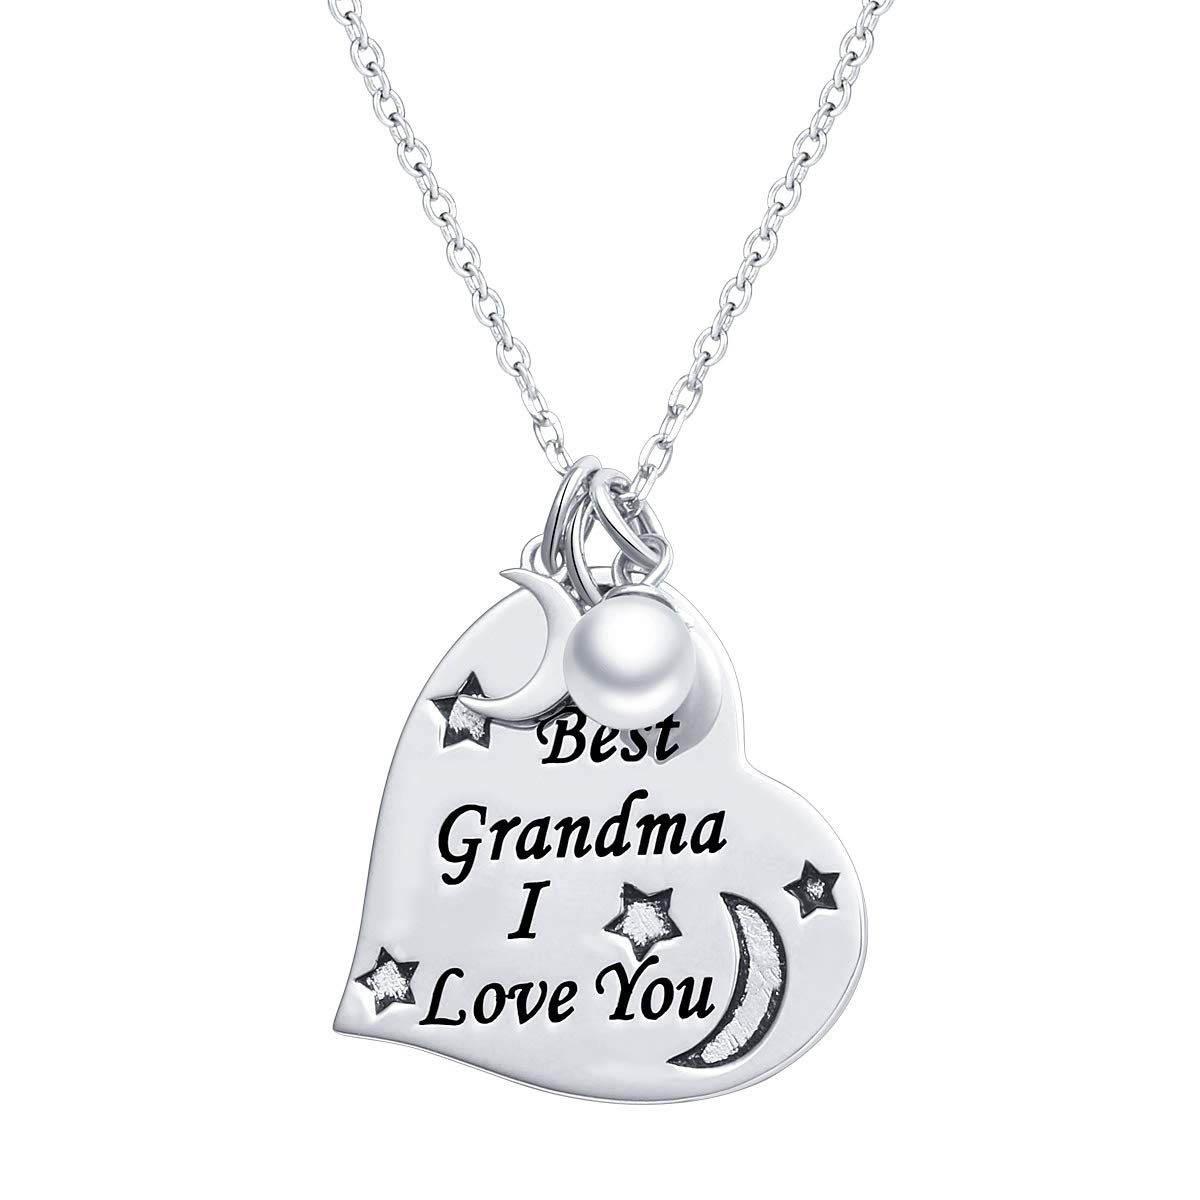 S925 Sterling Silver Grandmother Jewelry Gifts I Love You Grandma Necklace Heart Pendant with Chain 18''